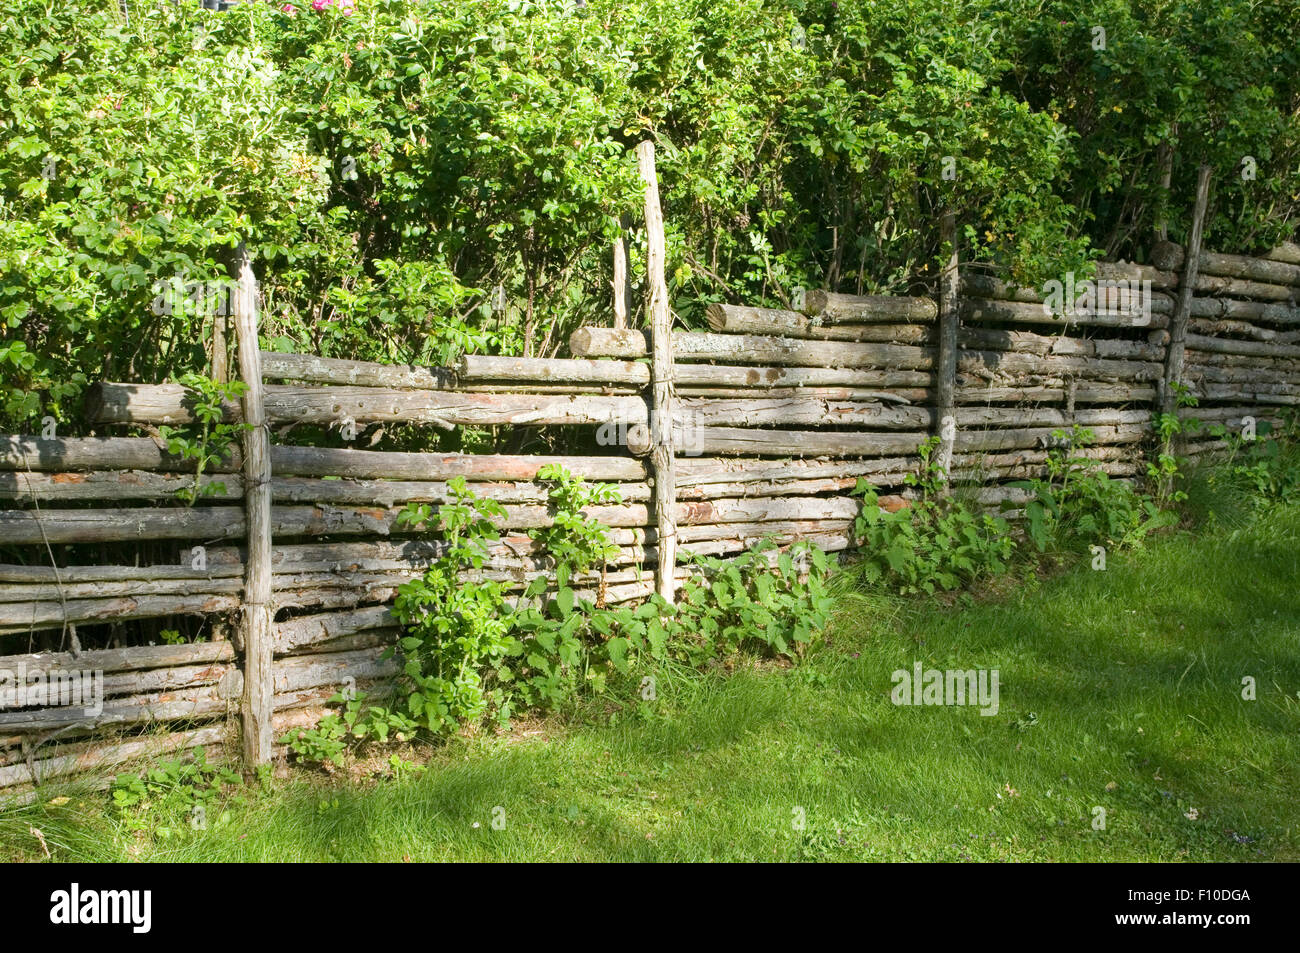 Picturesque fence of poles 52